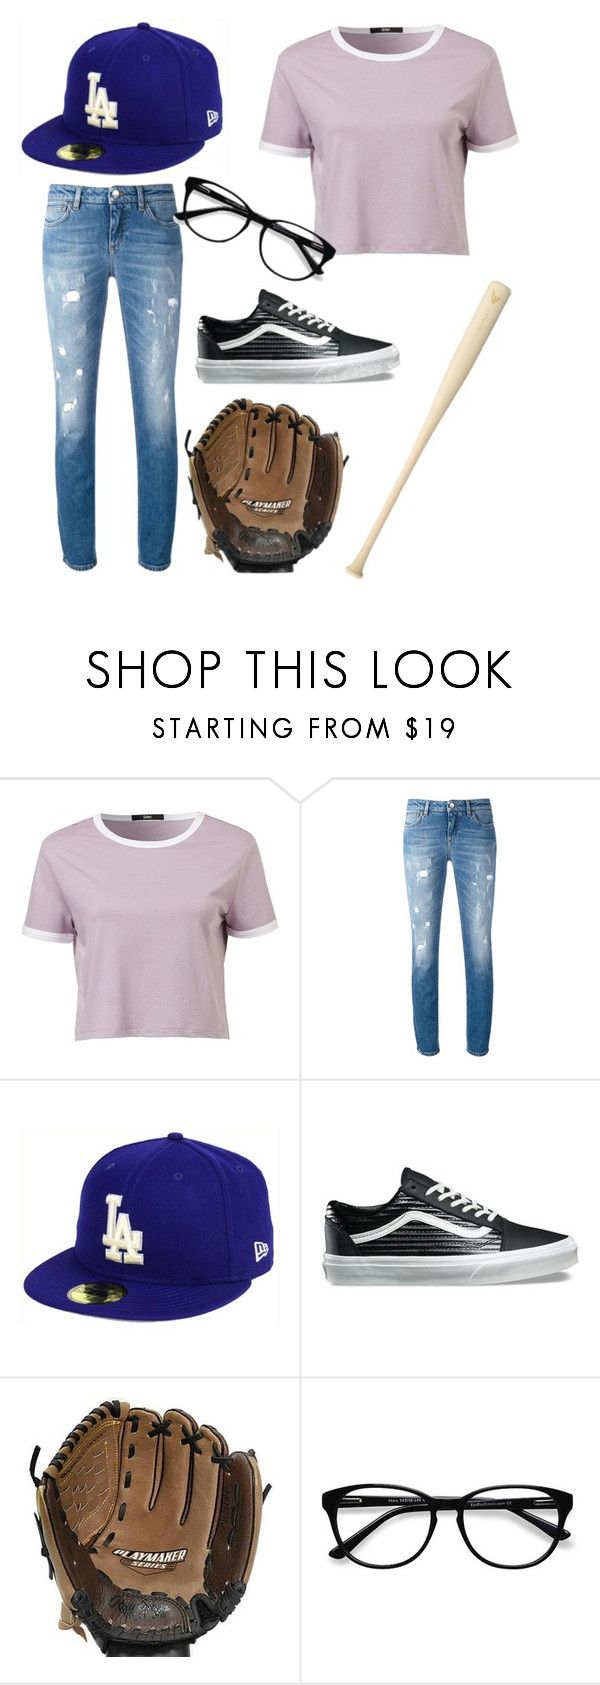 """The Sandlot #2"" by freckled-skyline on Polyvore featuring Dolce&Gabbana, New Era, Vans, EASTON, Rawlings and EyeBuyDirect.com"